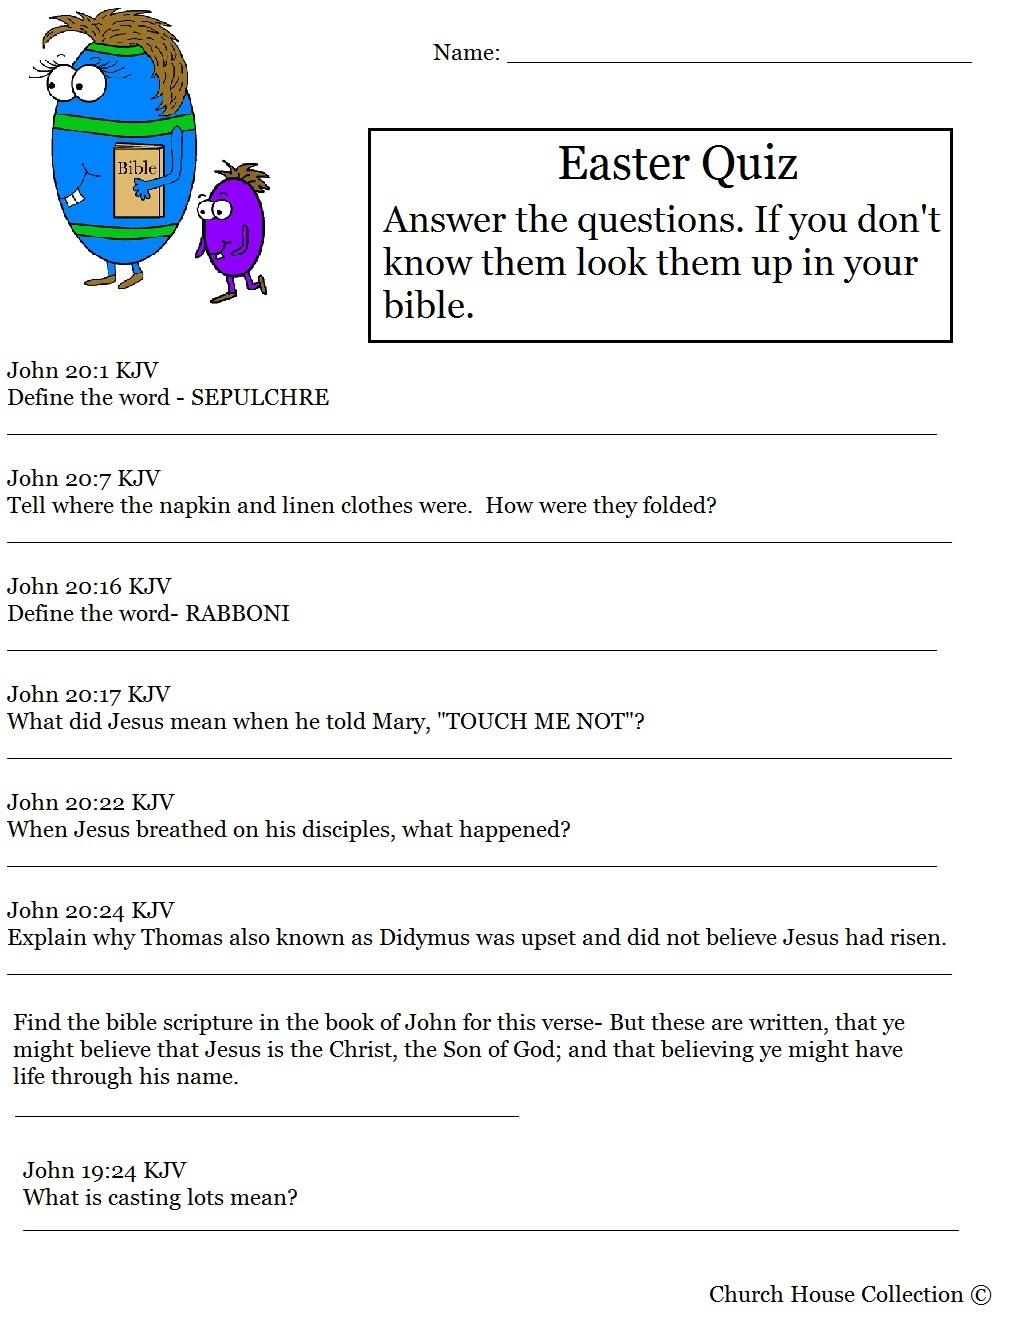 Hard Easter Quiz On Resurrection Of Jesus - Free Bible Questions And Answers Printable